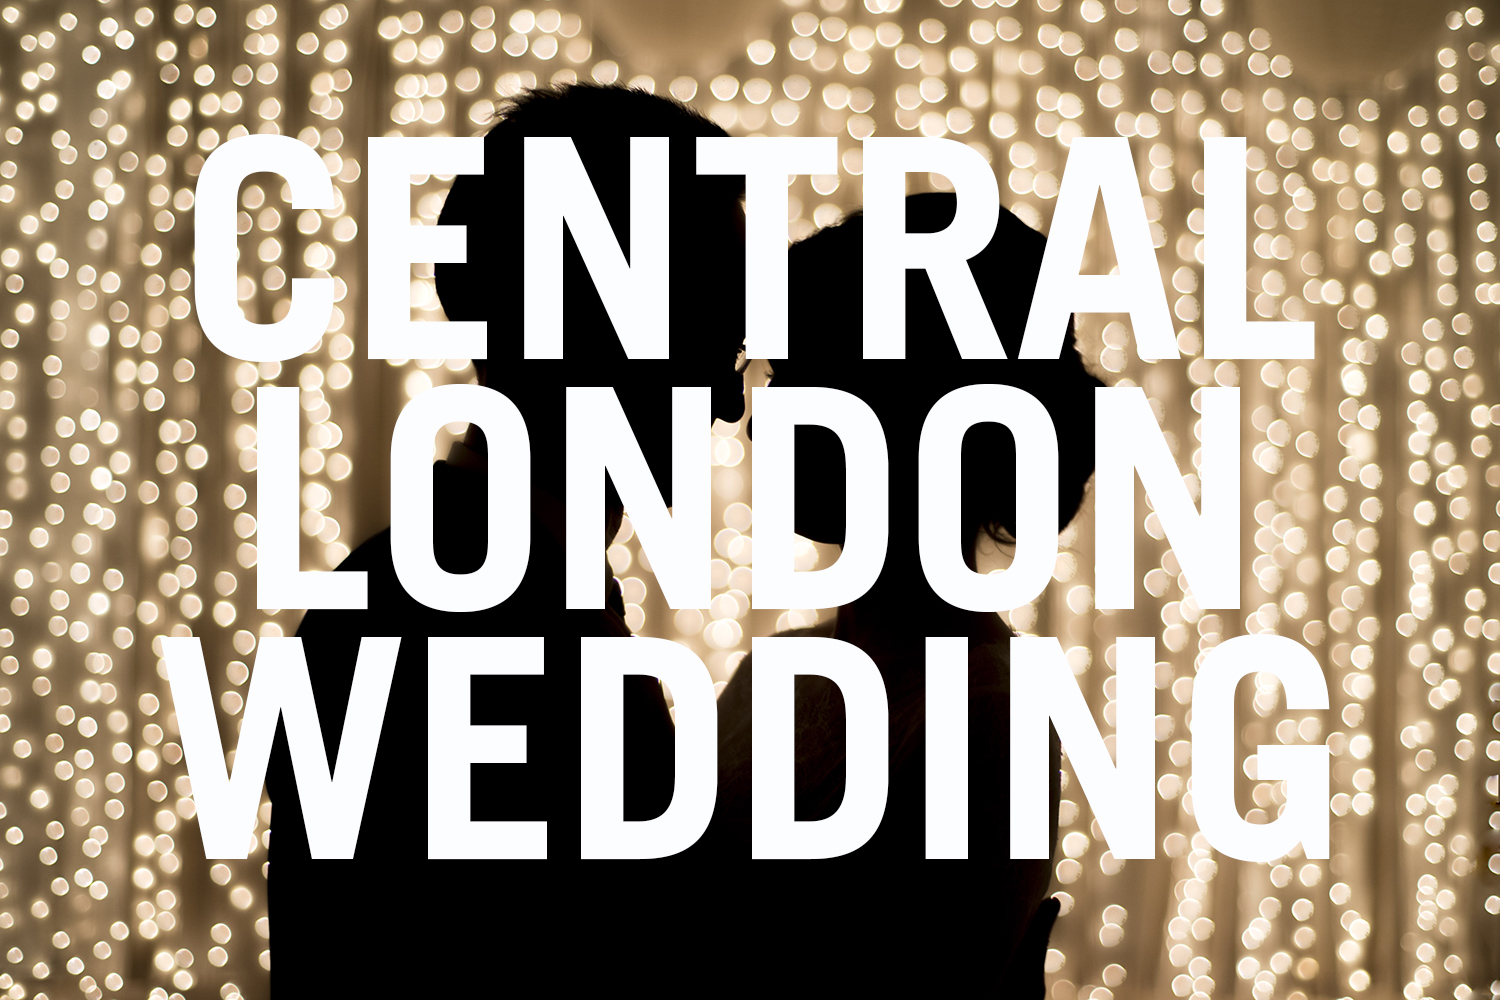 http://www.vivaweddingphotography.com/galleries/recentweddings/central-london-wedding